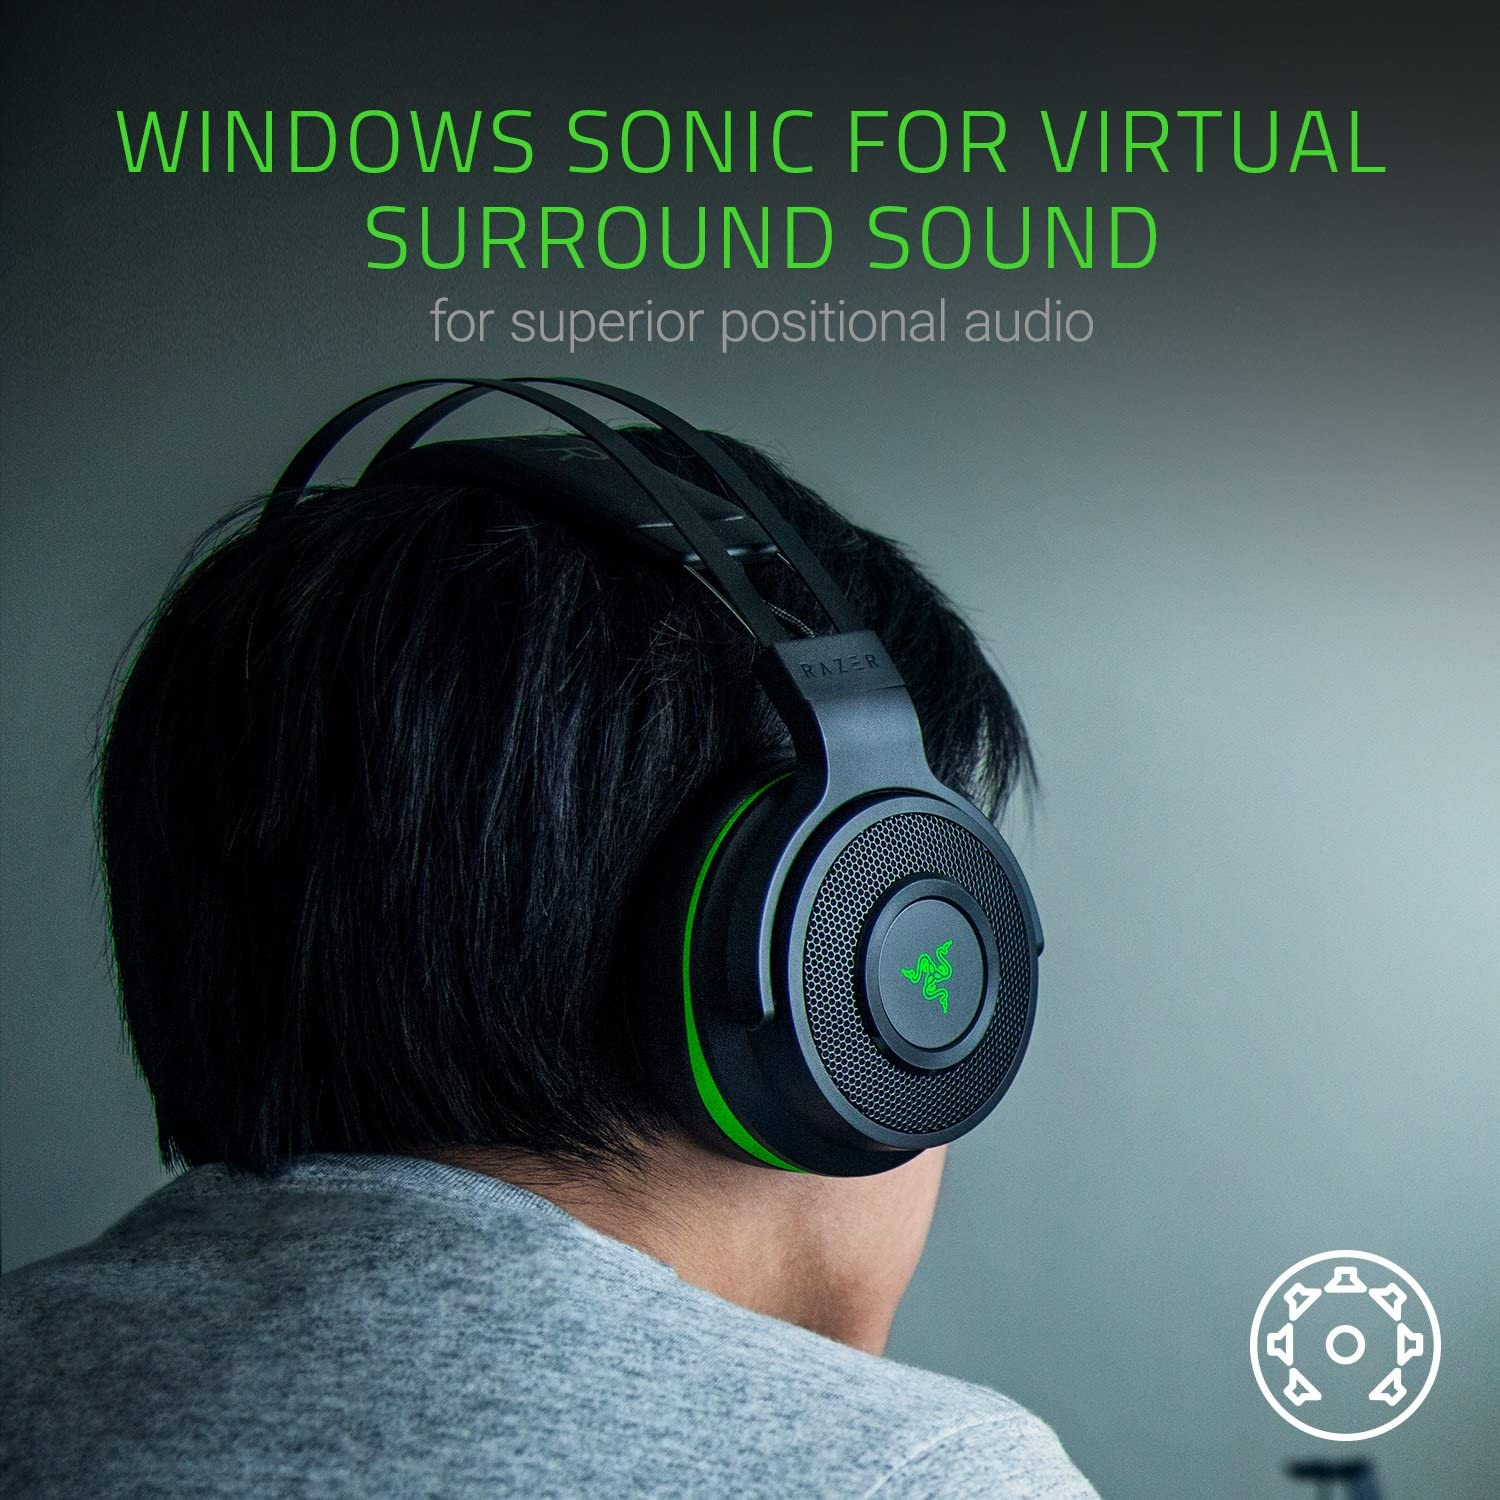 Razer Thresher for Xbox One: Windows Sonic Surround - Lag-Free Wireless  Connection - Retractable Digital Microphone - Gaming Headset Works with PC  &